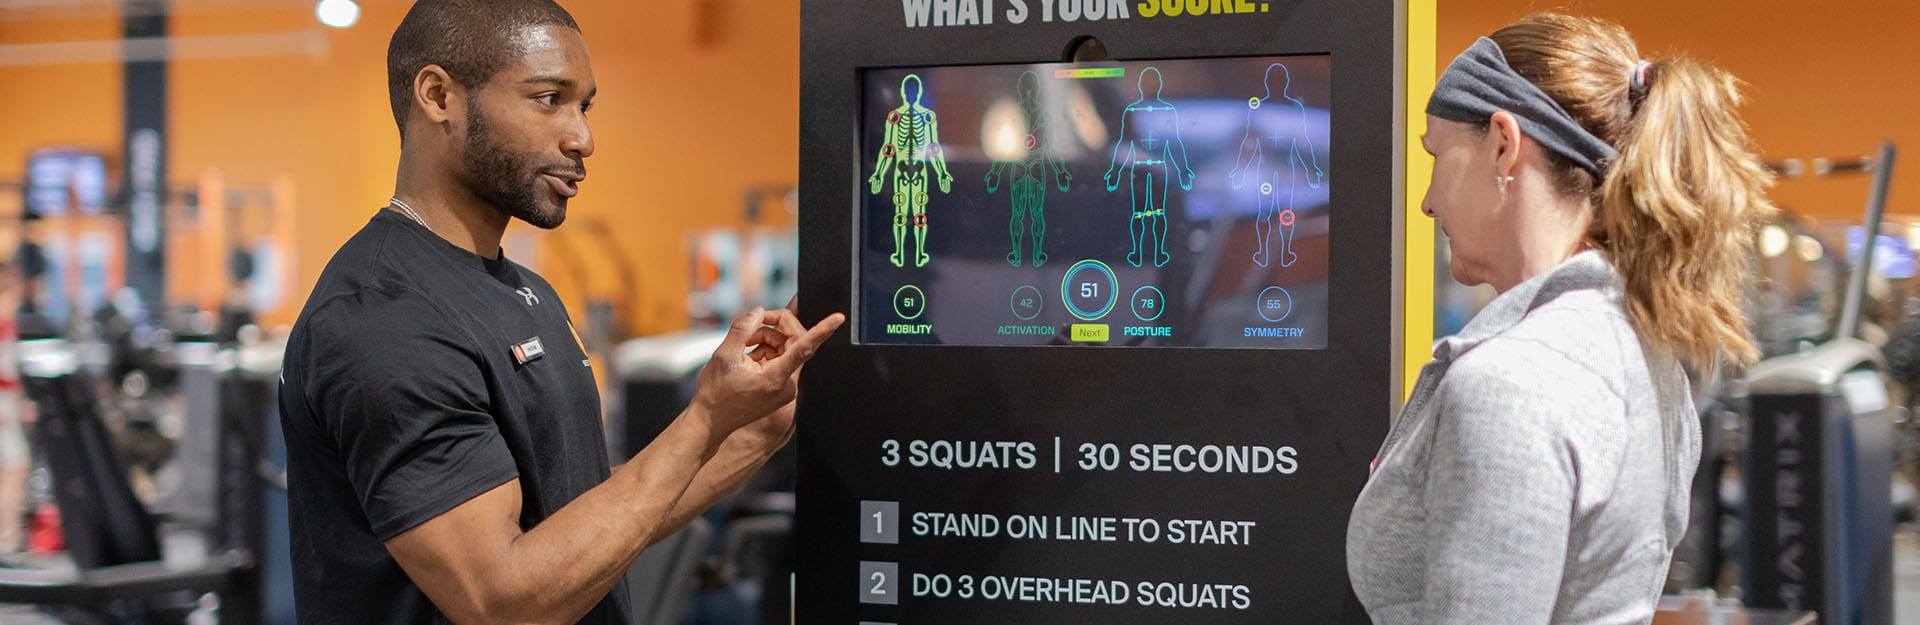 personal trainer showing gym member the results kiosk